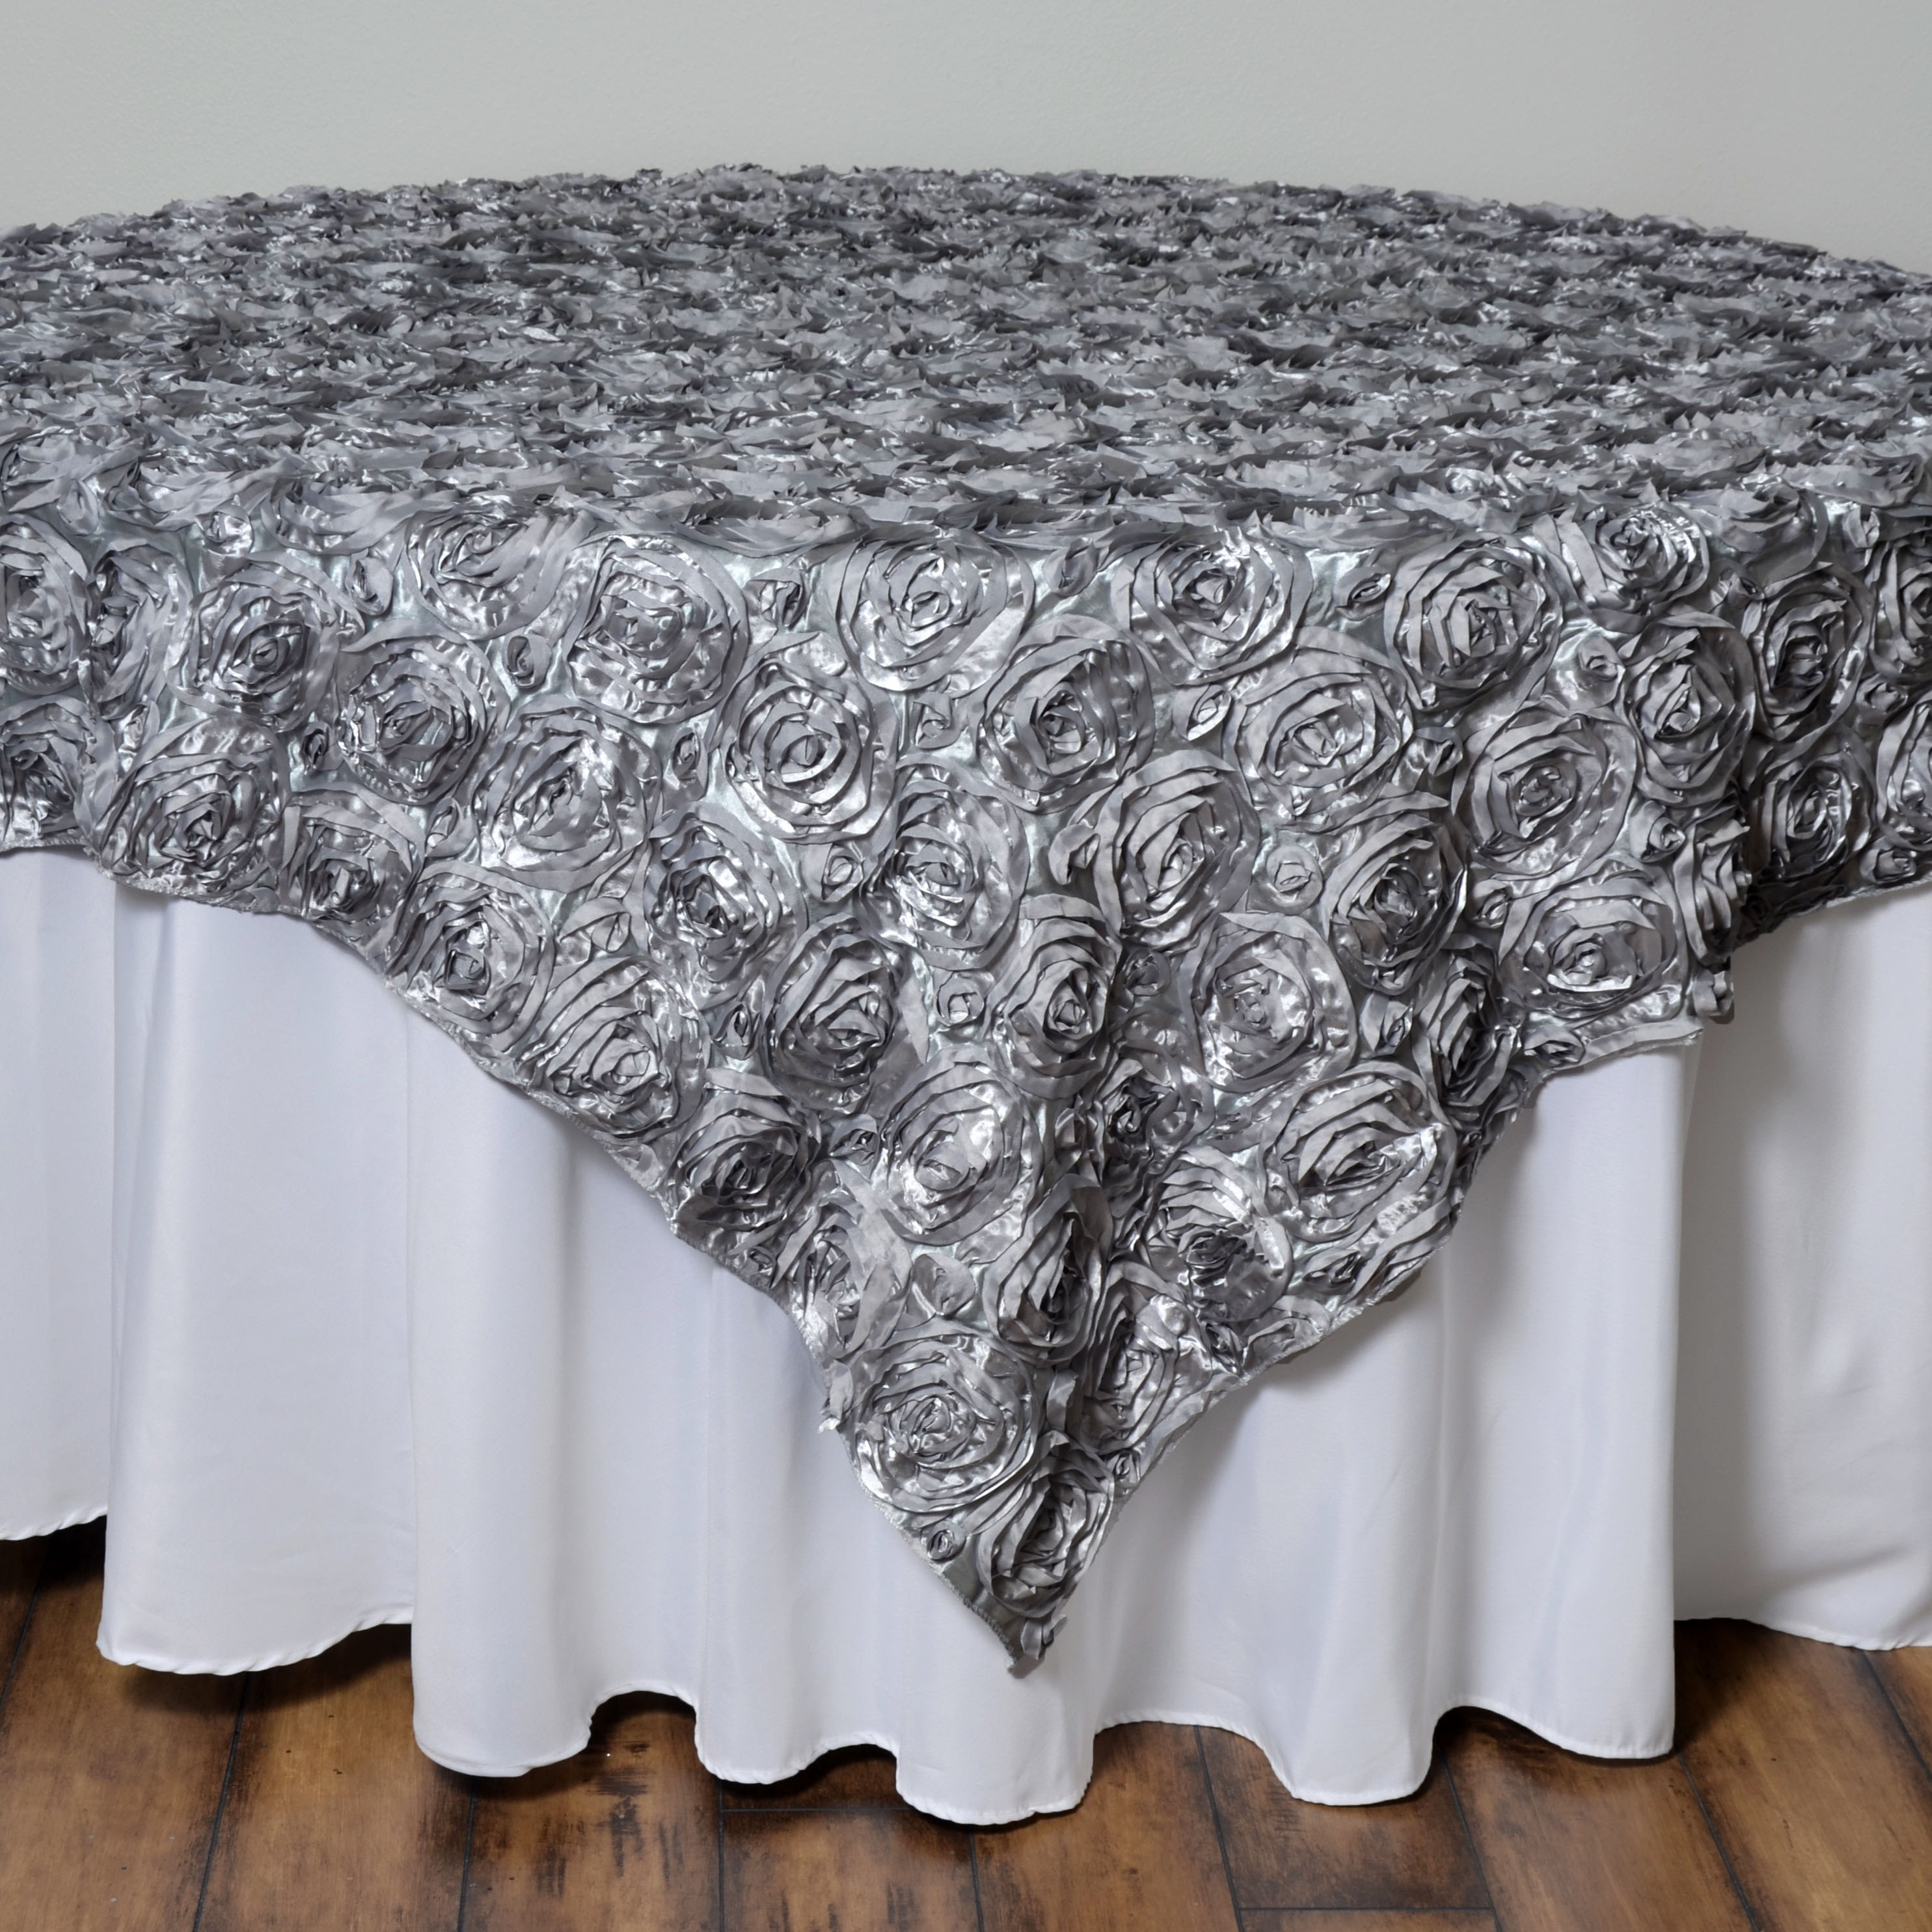 Round Table Overlays.Details About 72x72 Silver Satin Raised Roses Table Overlays Unique Wedding Party Linens Sale